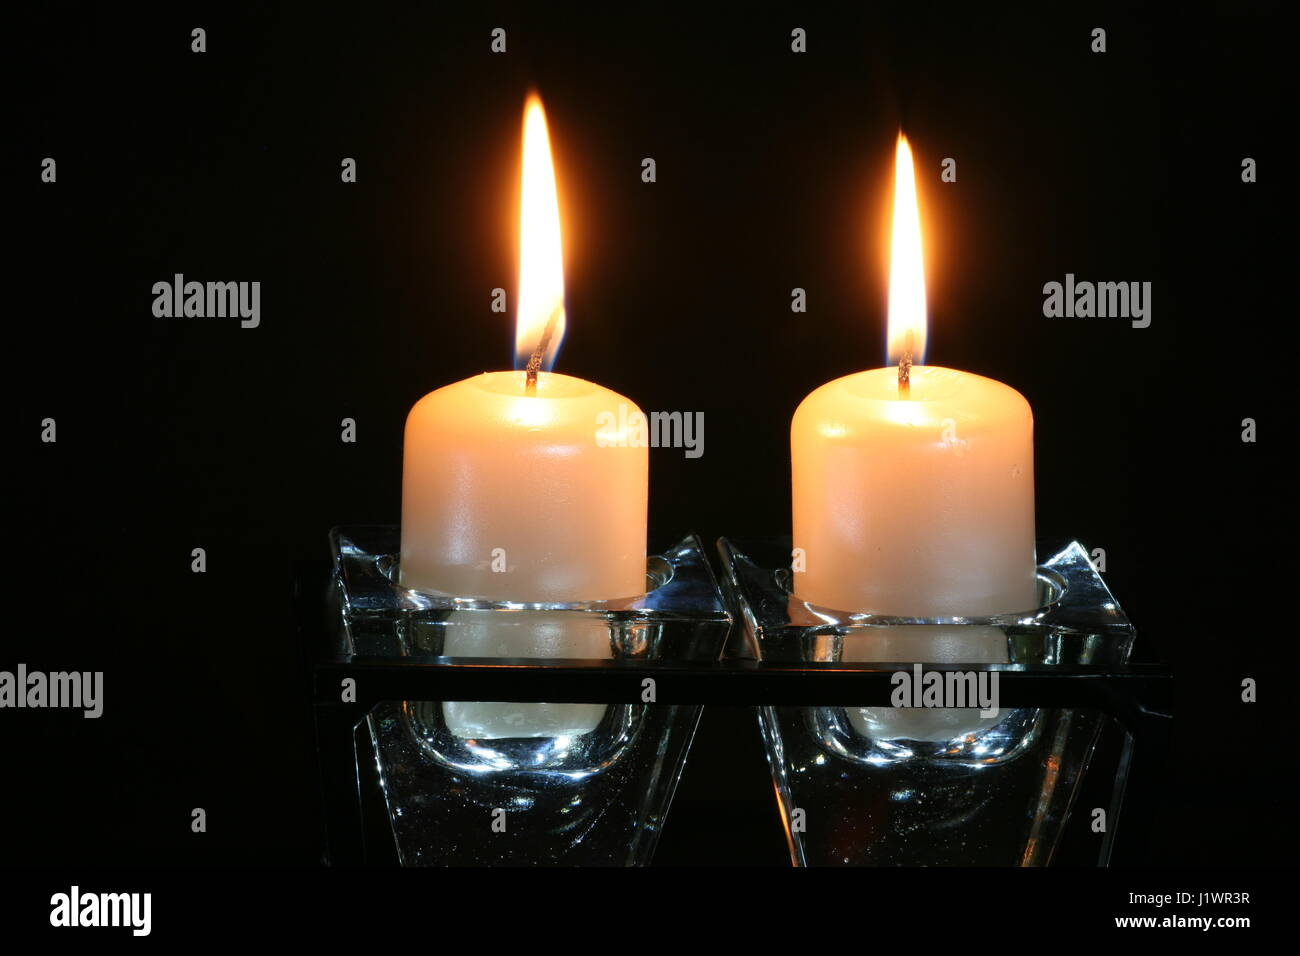 burning candles in glass candlestick - Stock Image